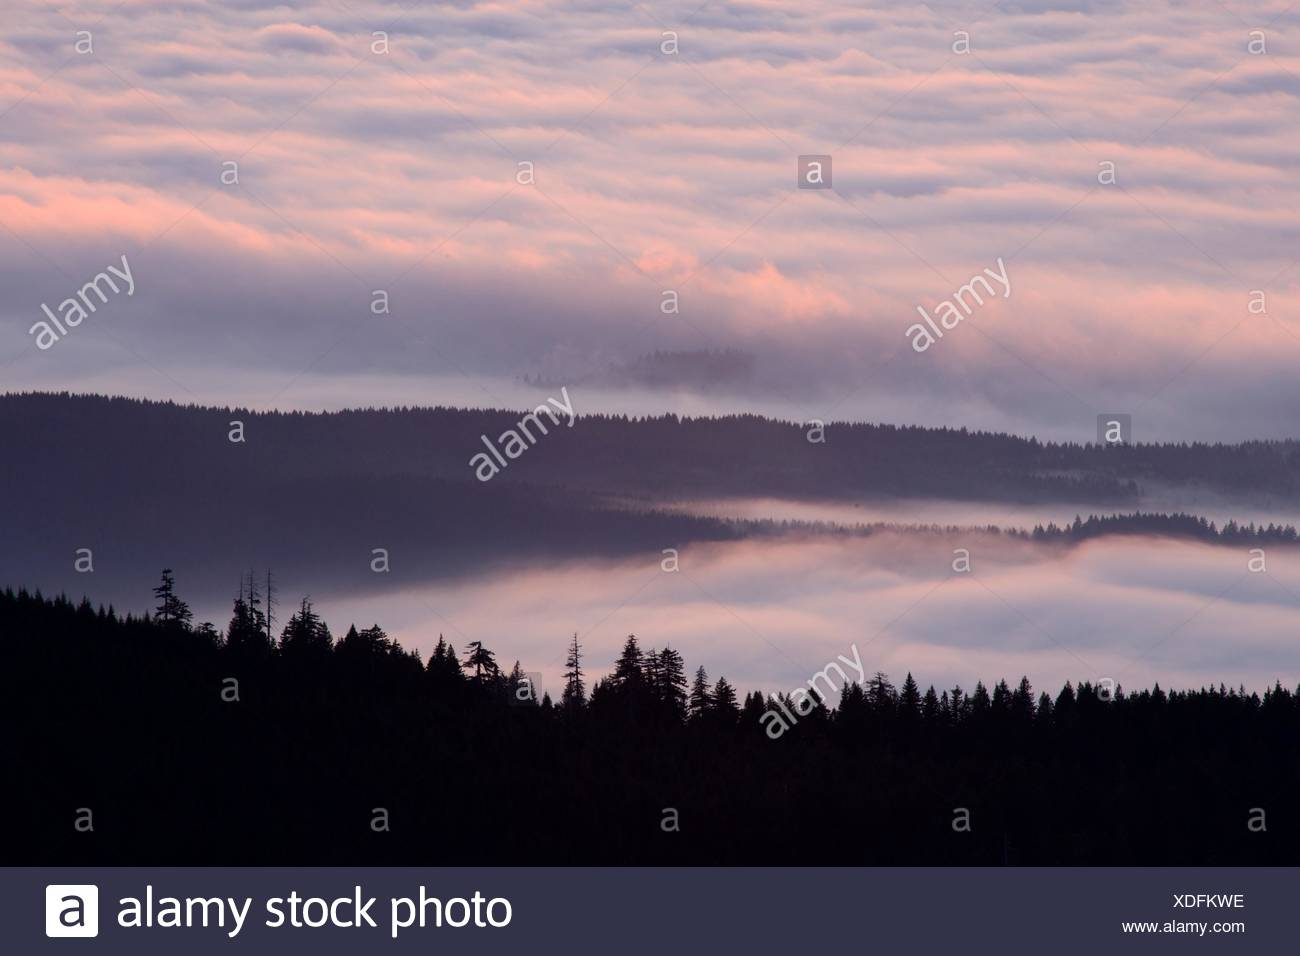 Willamette Valley fog from Marys Peak viewpoint, Marys Peak Scenic Botanical Area, Siuslaw National Forest, Oregon. - Stock Image